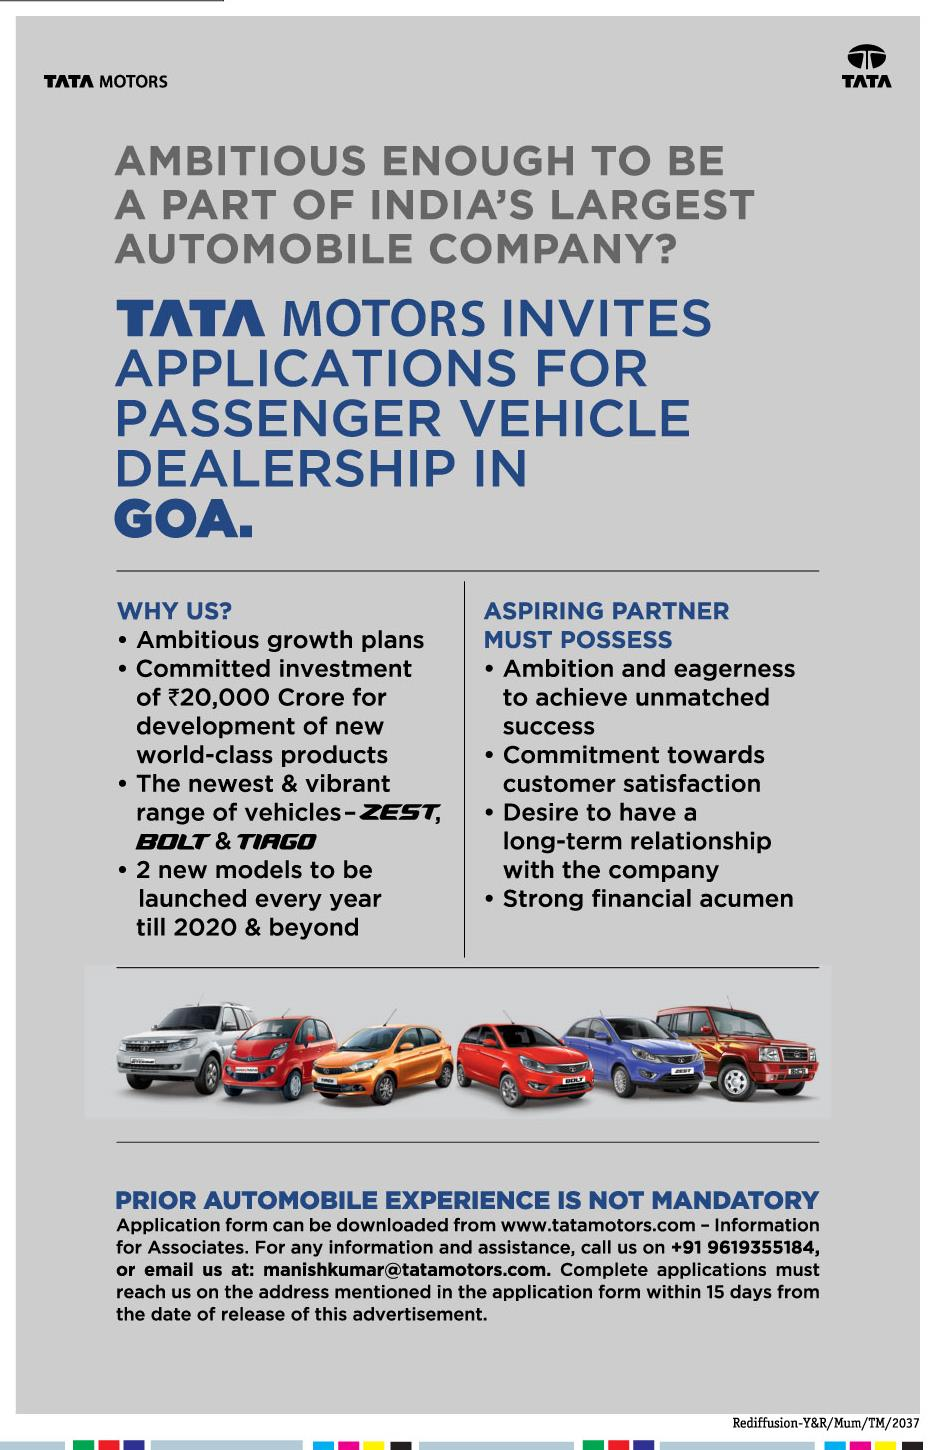 tata-motors-dealership-invitation-application